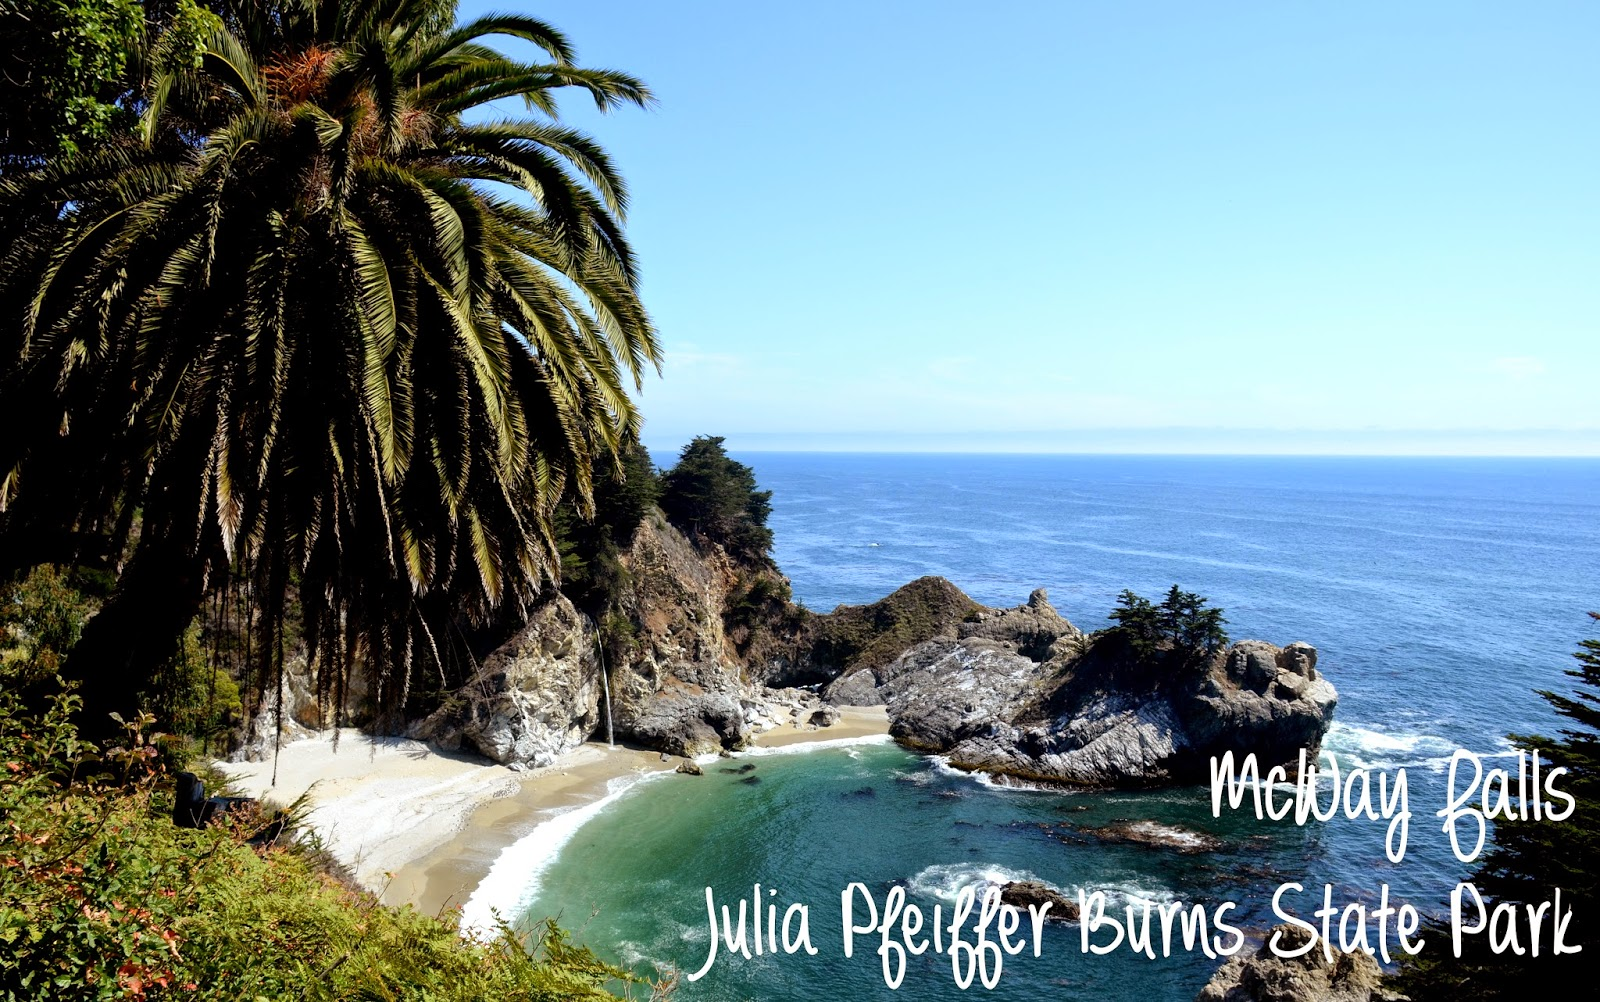 McWay Falls, Julia Pfeiffer Burns State Park, Big Sur, Californie, USA